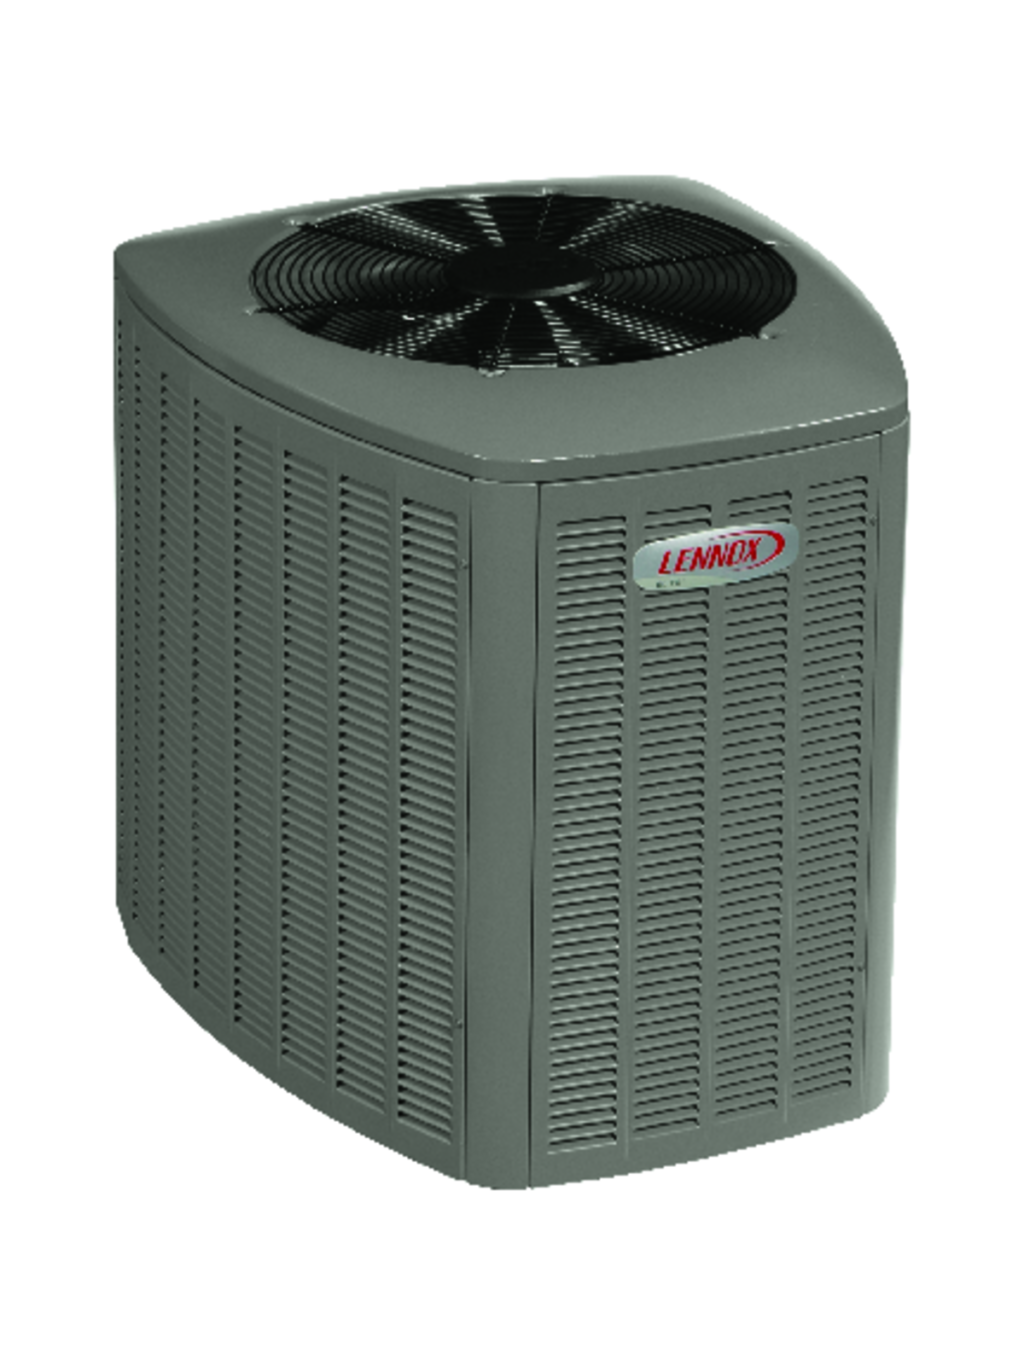 heat pump blaine wa